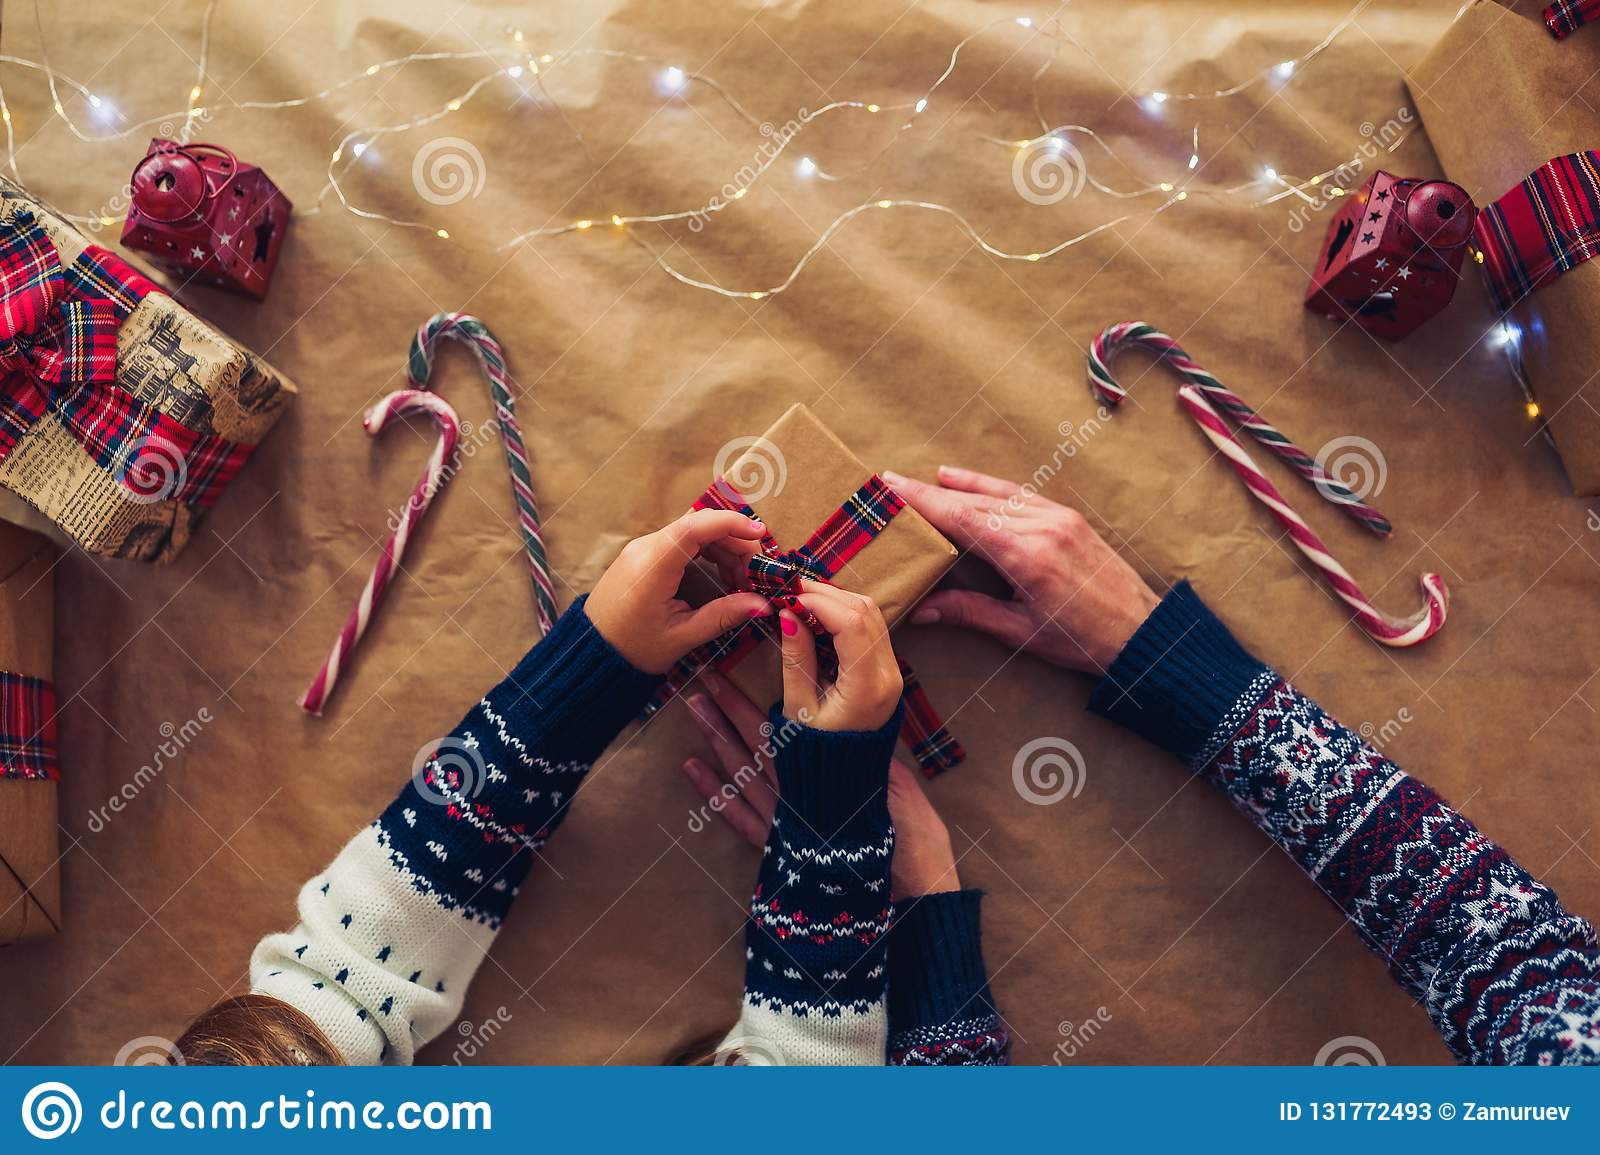 A mother and daughter prepare Xmas gifts. Top view. Christmas family traditions.